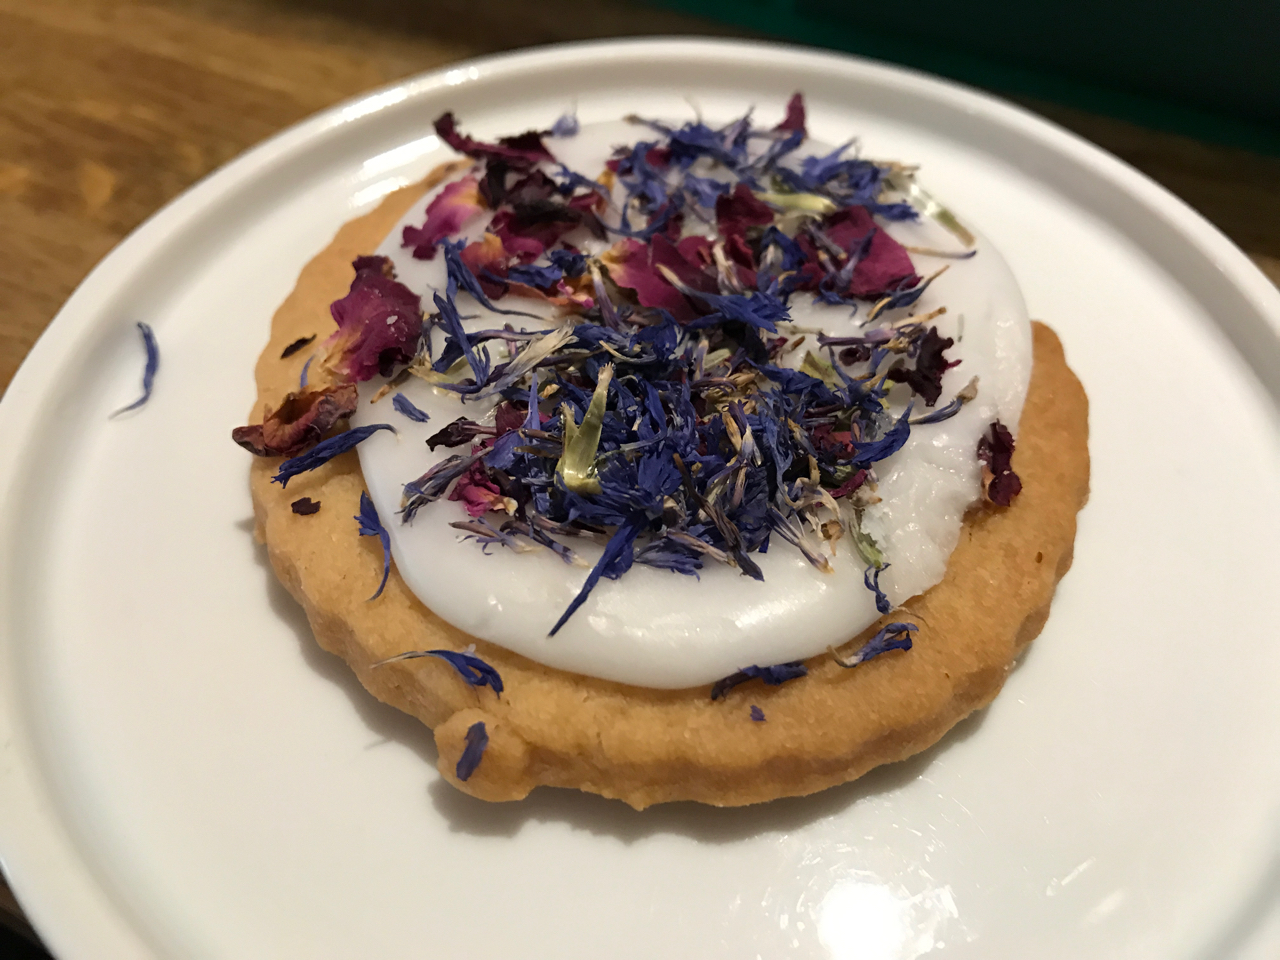 Sablés Aux Fleurs - A stunning shortbread cookie with white icing and purple and pink dried flowers at Peonies Café and Flower Shop in Paris, France.